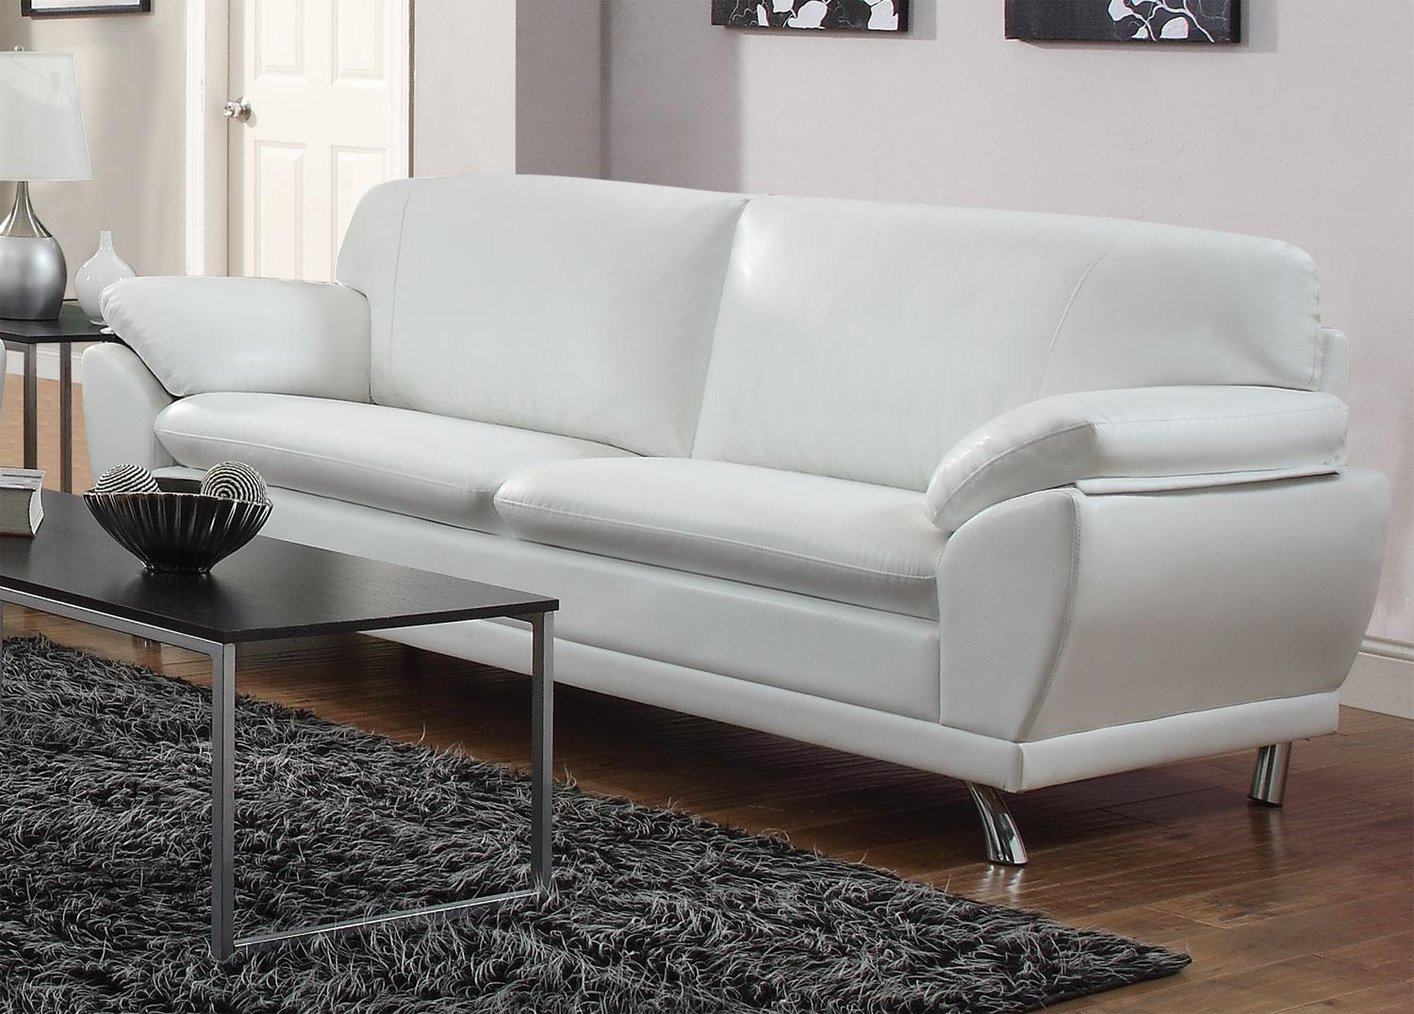 robyn white leather sofa - steal-a-sofa furniture outlet los